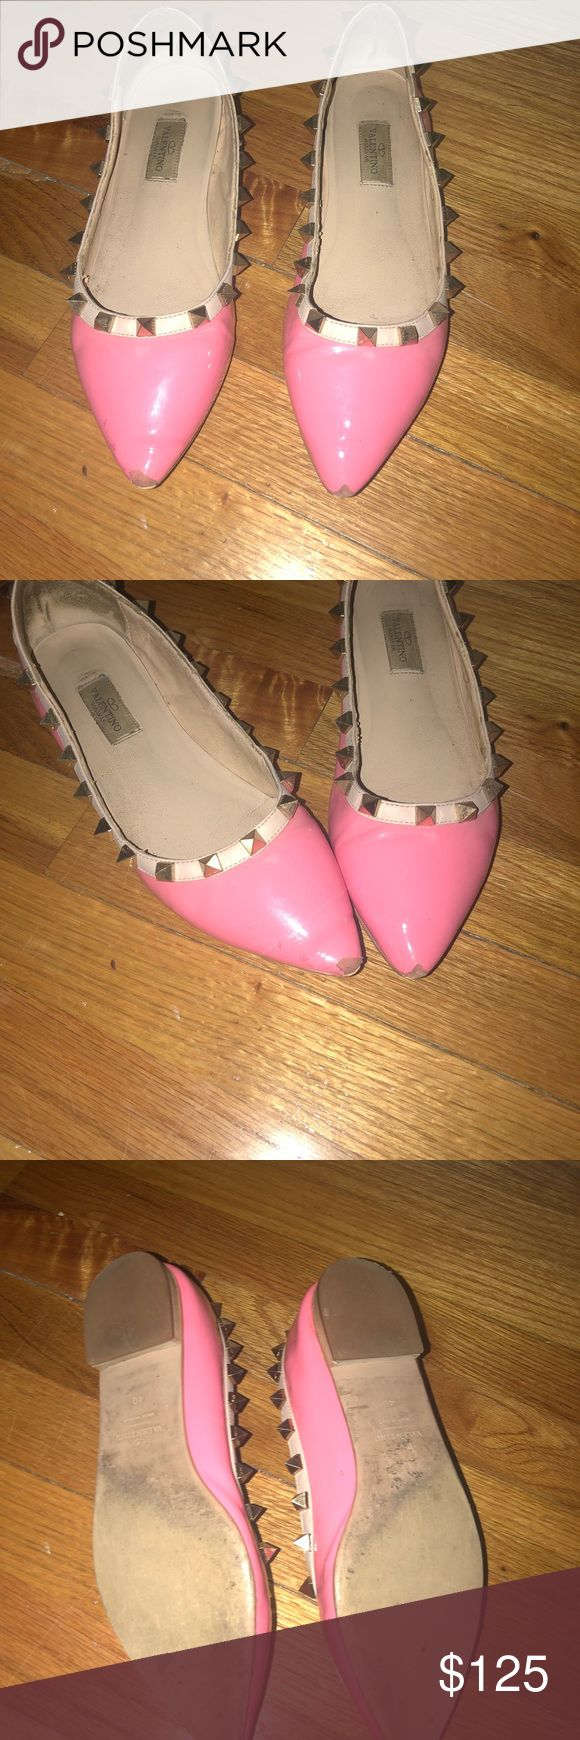 Valentino Rockstuds Valentino rockstuds for sale! Worn but still in decent condition (1 stud missing) Valentino Shoes Flats & Loafers